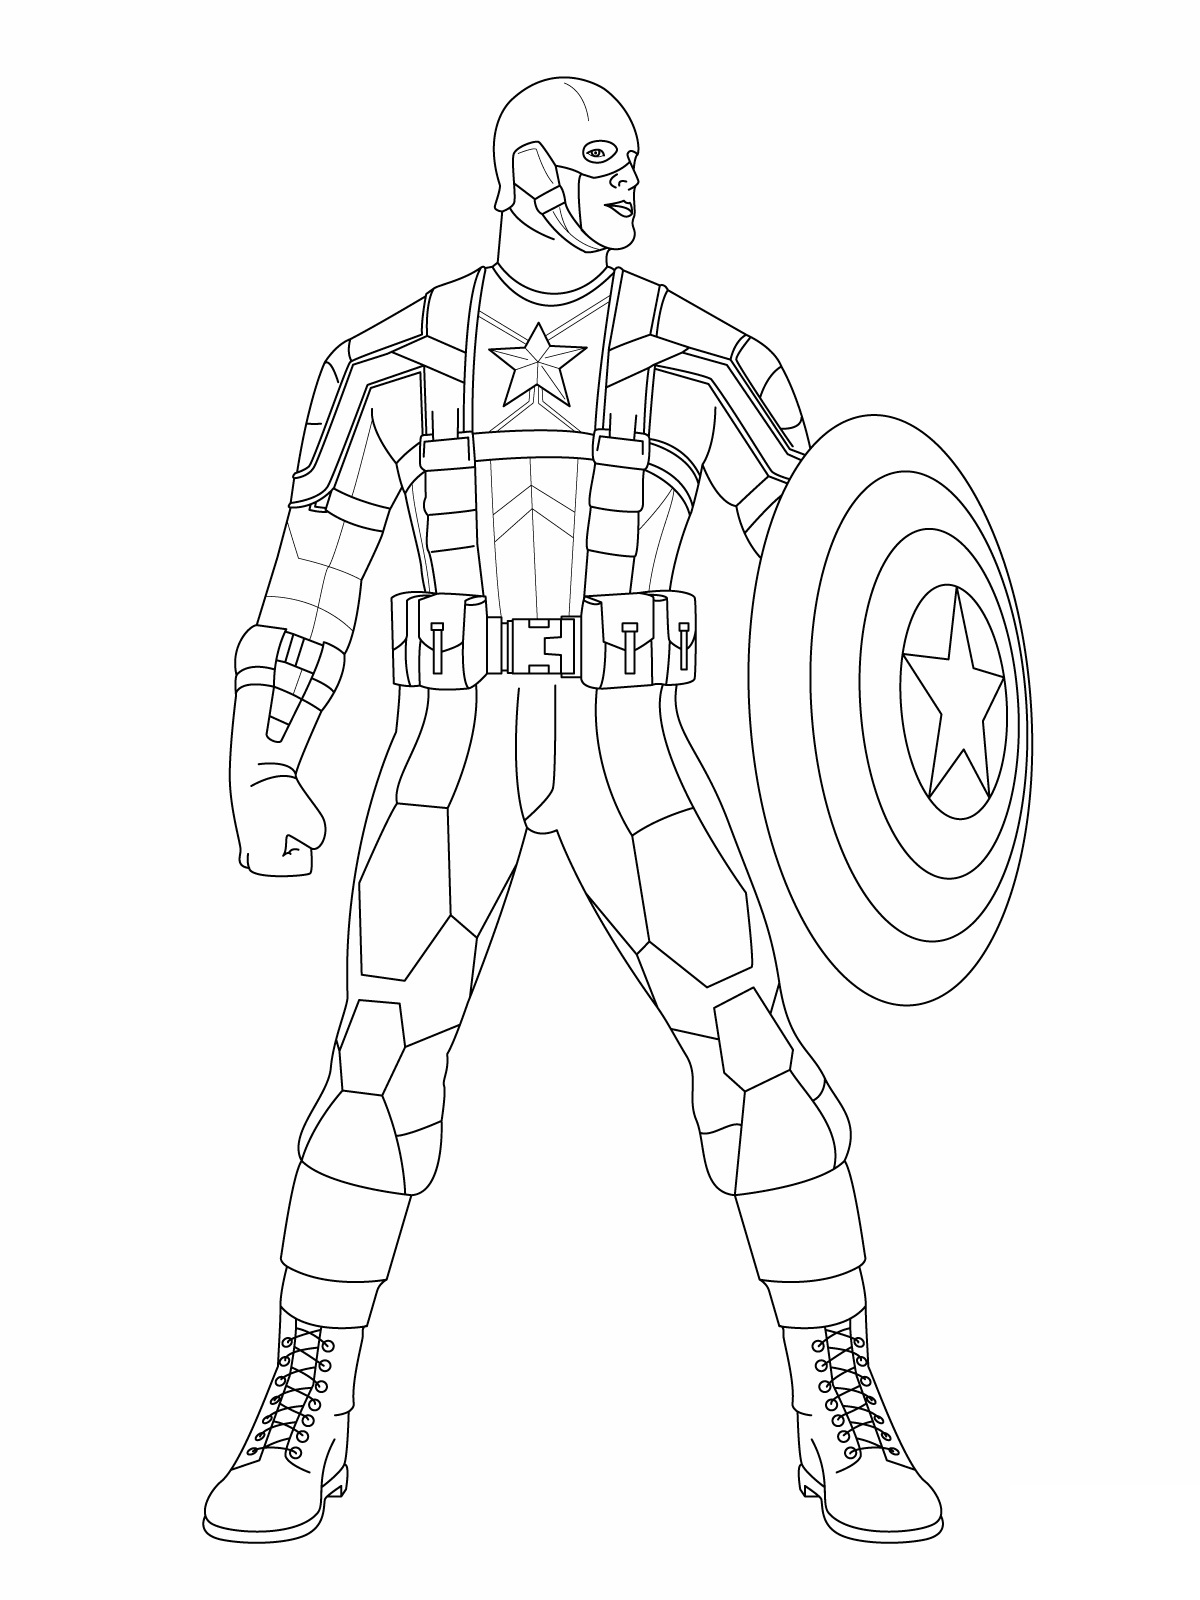 Printable Captain America Coloring Pages- Download and Print Now ...